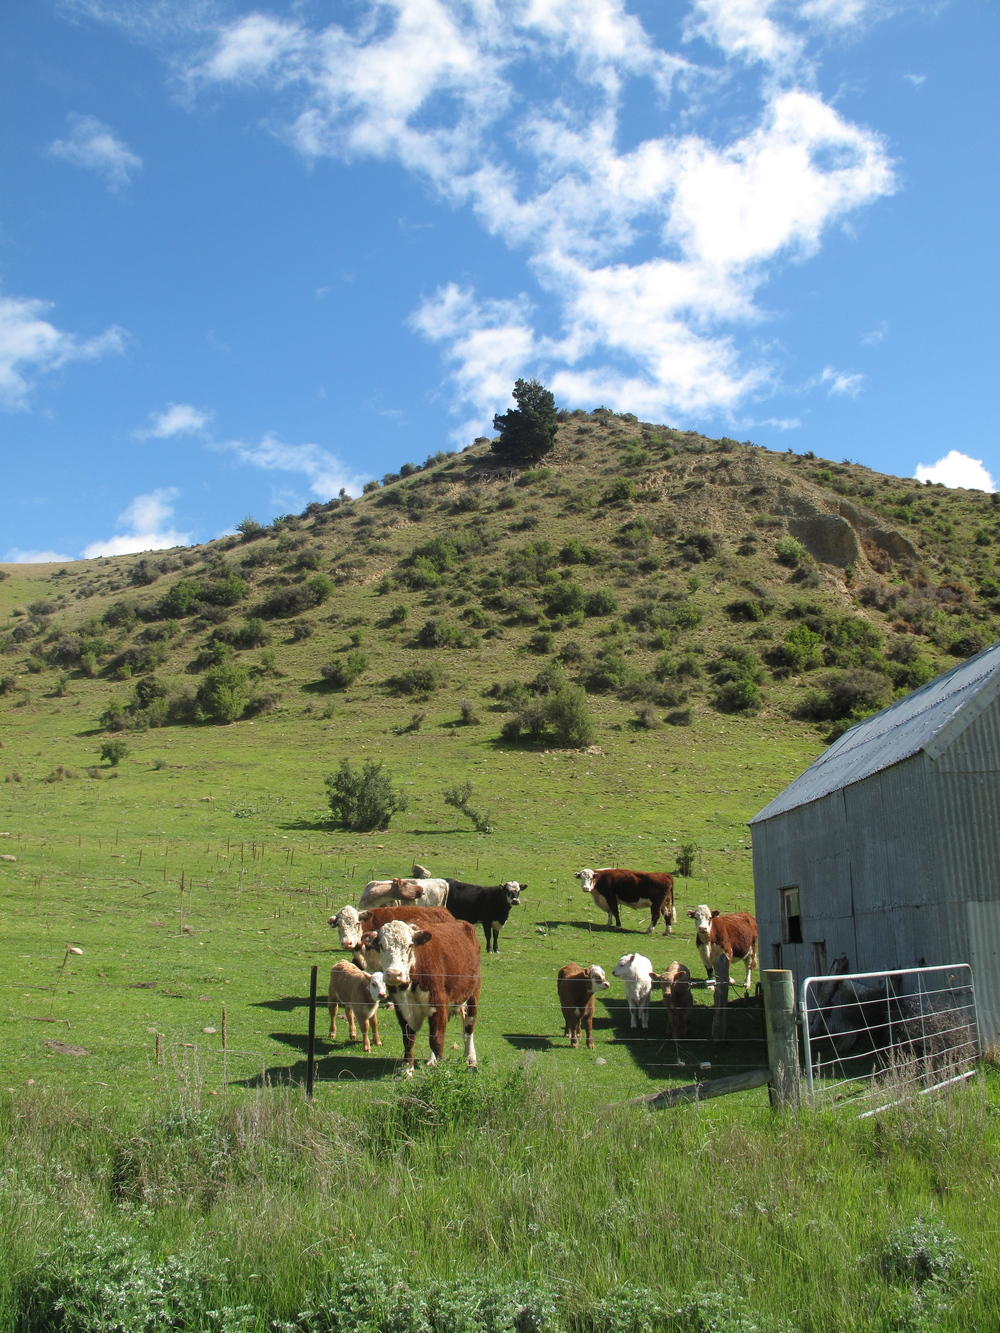 Jersey cows in the green hills of NZ wop wops